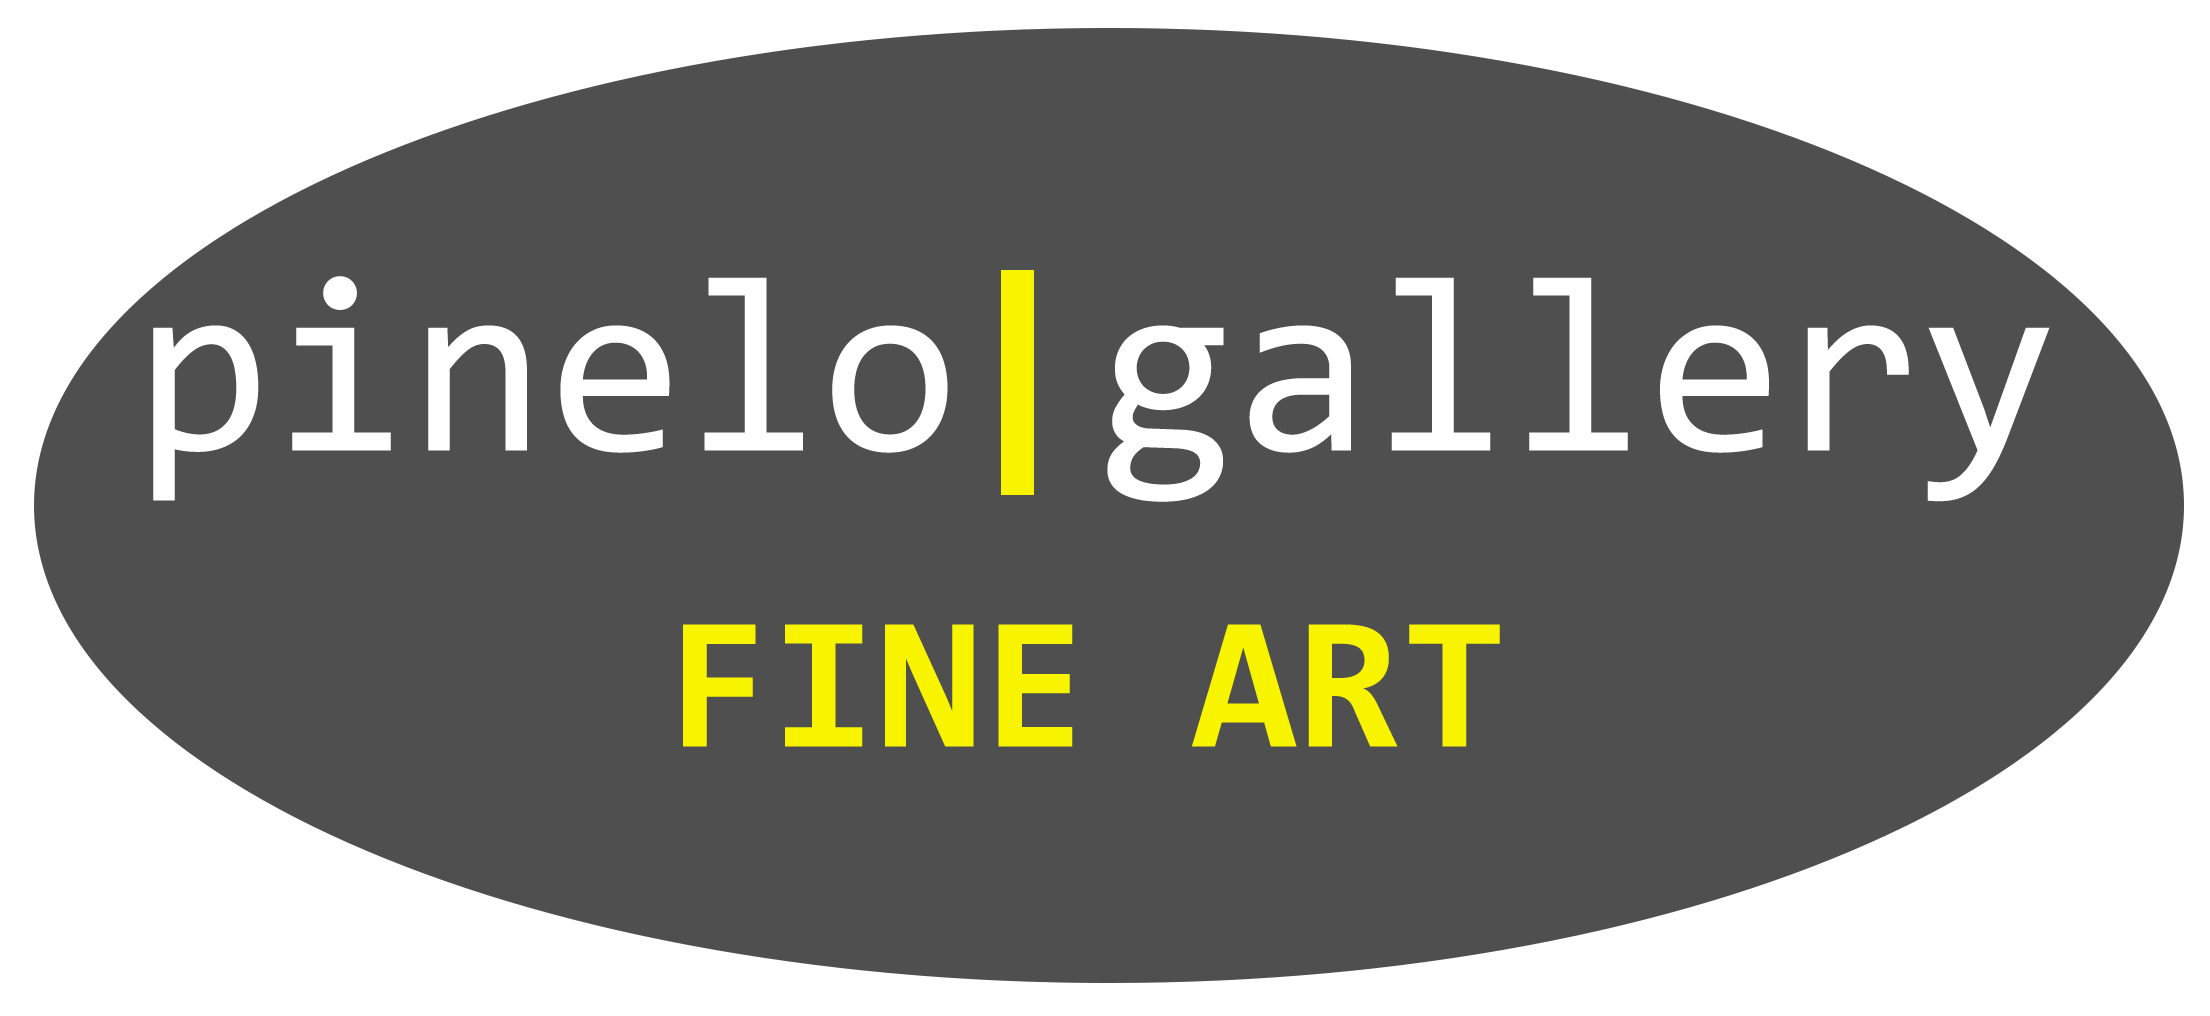 PineloArtGallery